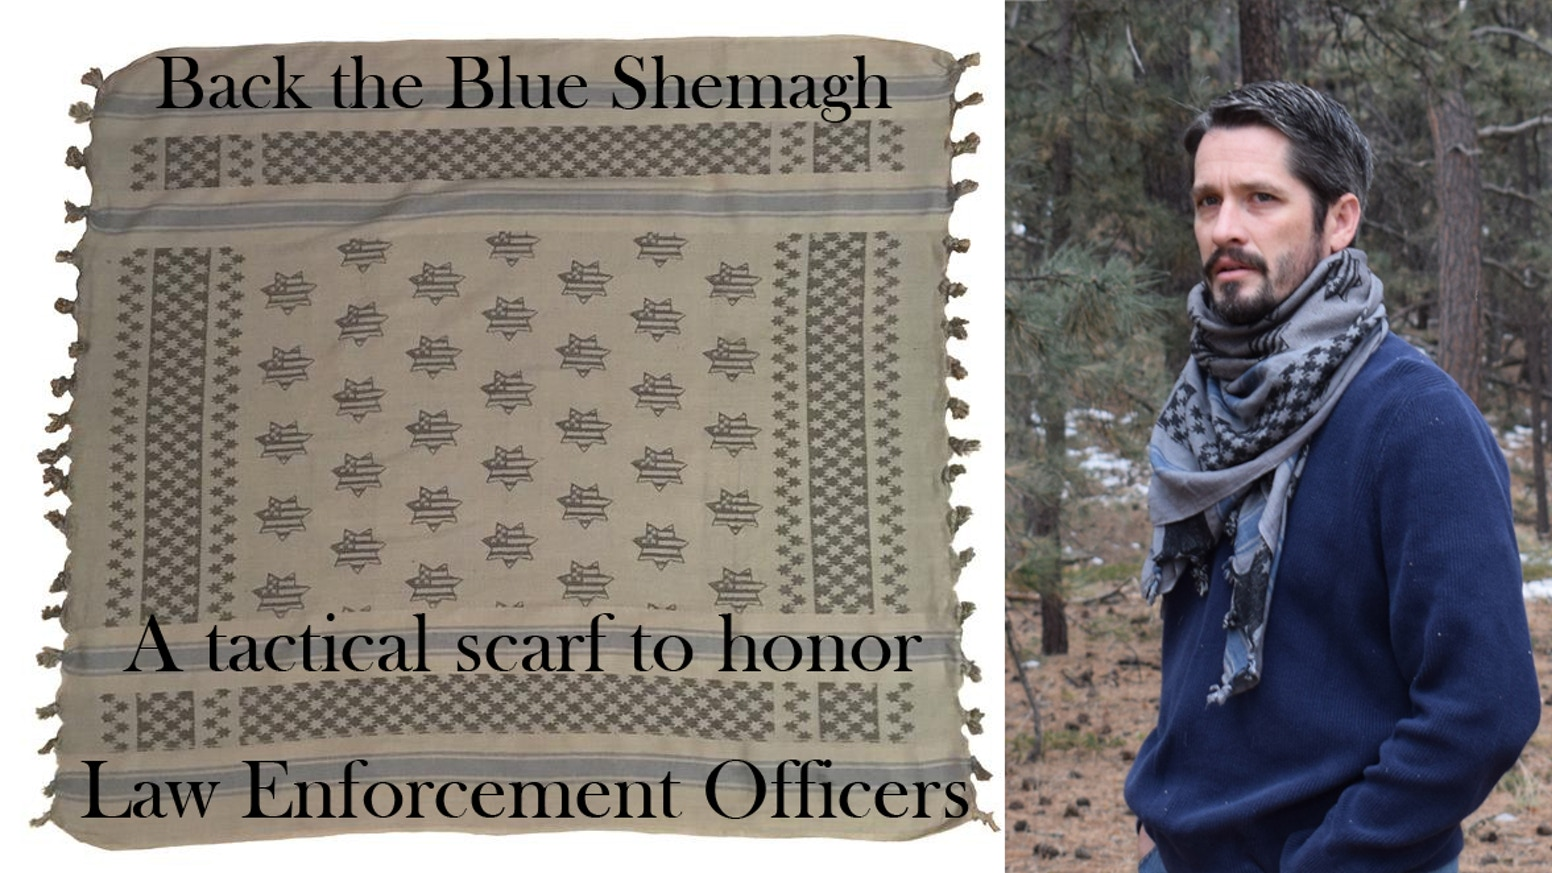 A high-quality woven cotton tactical scarf for law-enforcement officers and those who support them, with a blue line & shield pattern.